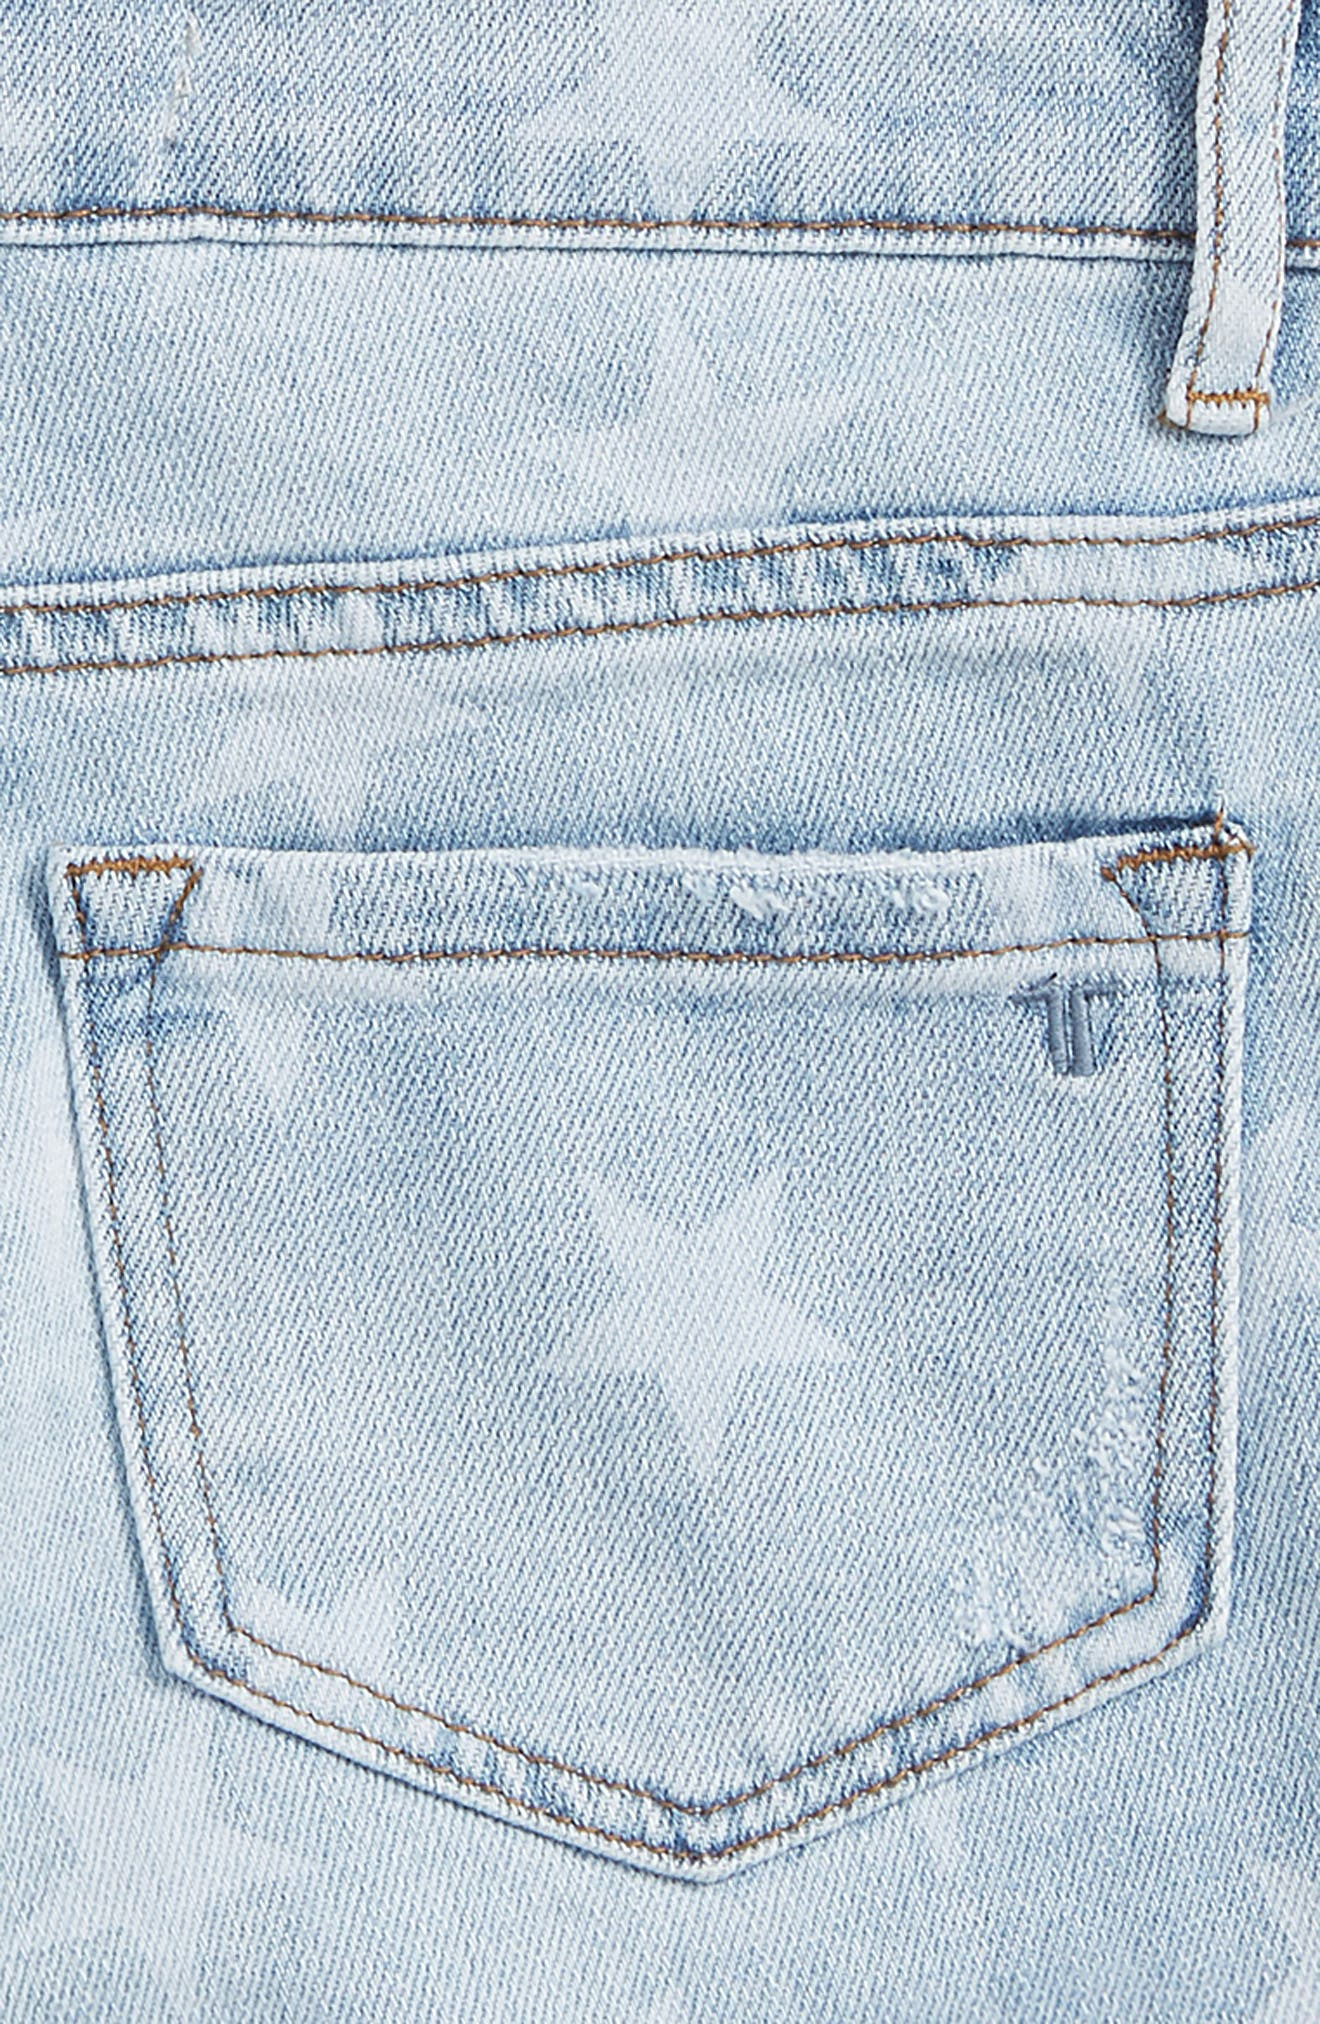 Star Roll Distressed Denim Shorts,                             Alternate thumbnail 3, color,                             461